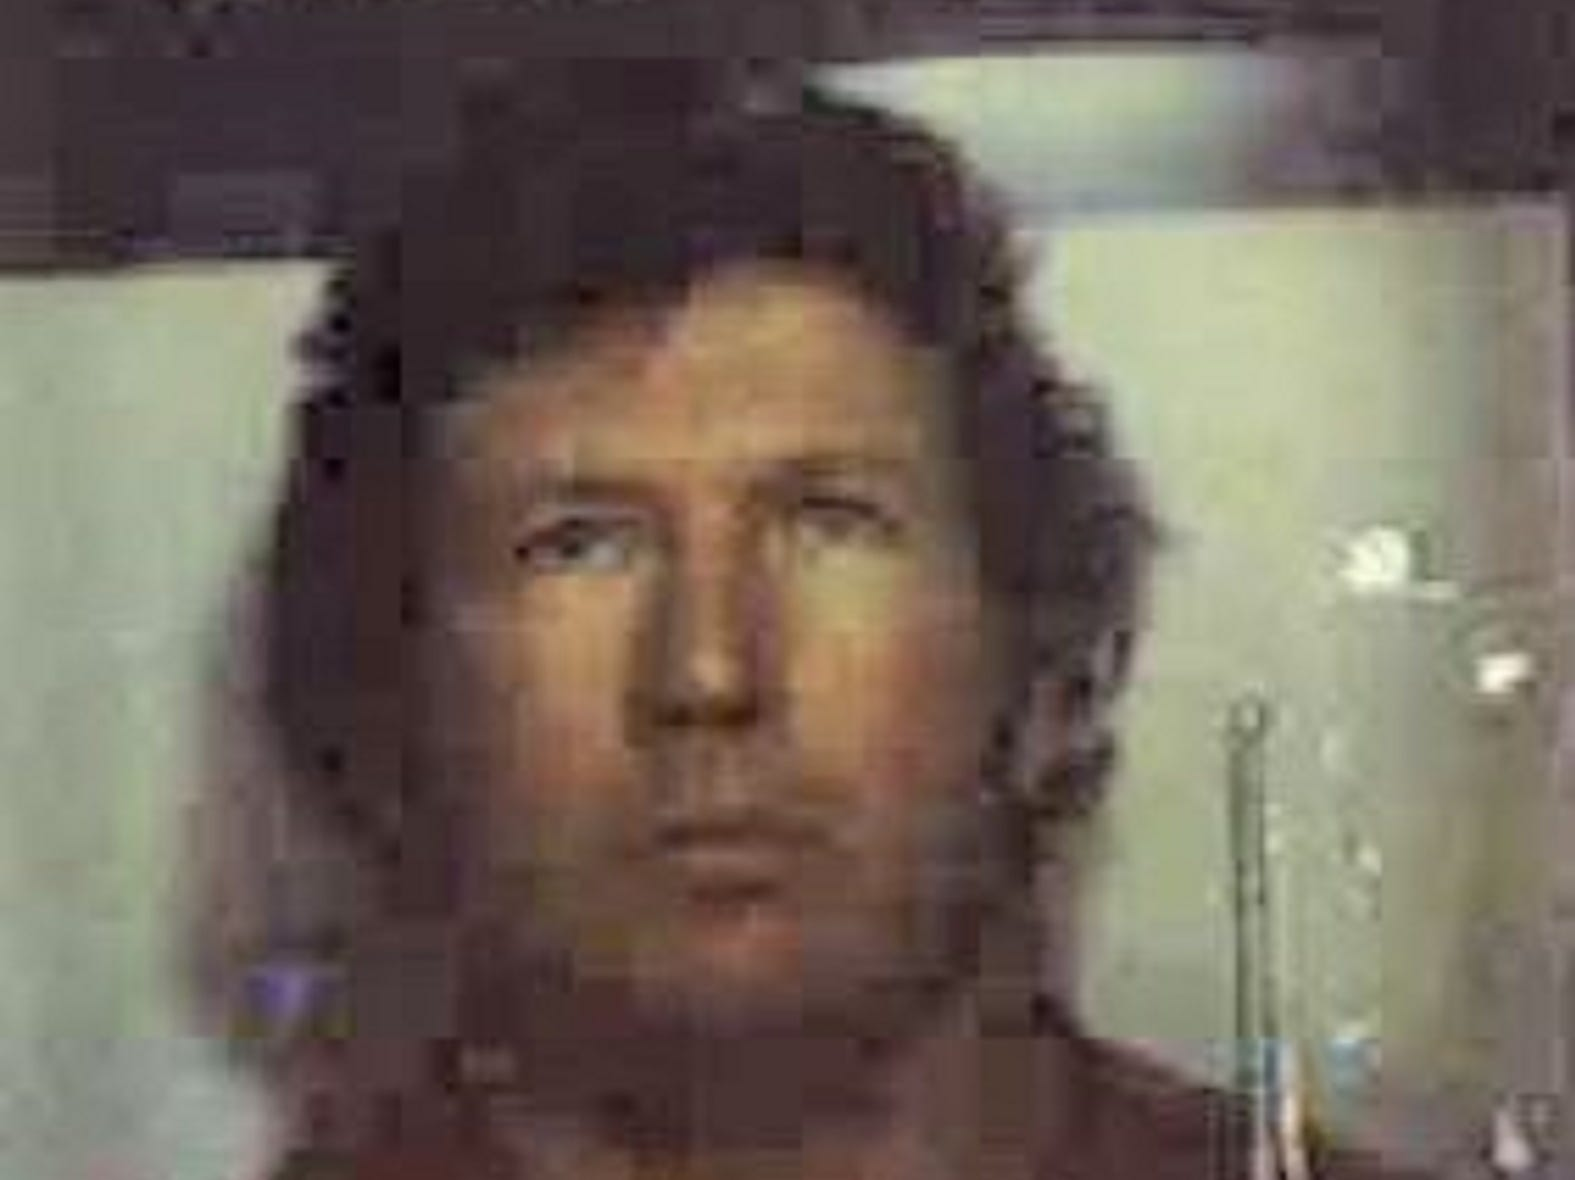 A mug shot photo of James Richard Curry, then 36, taken in 1983 and provided to Washoe County investigators by the Santa Clara County Sheriff's Office.